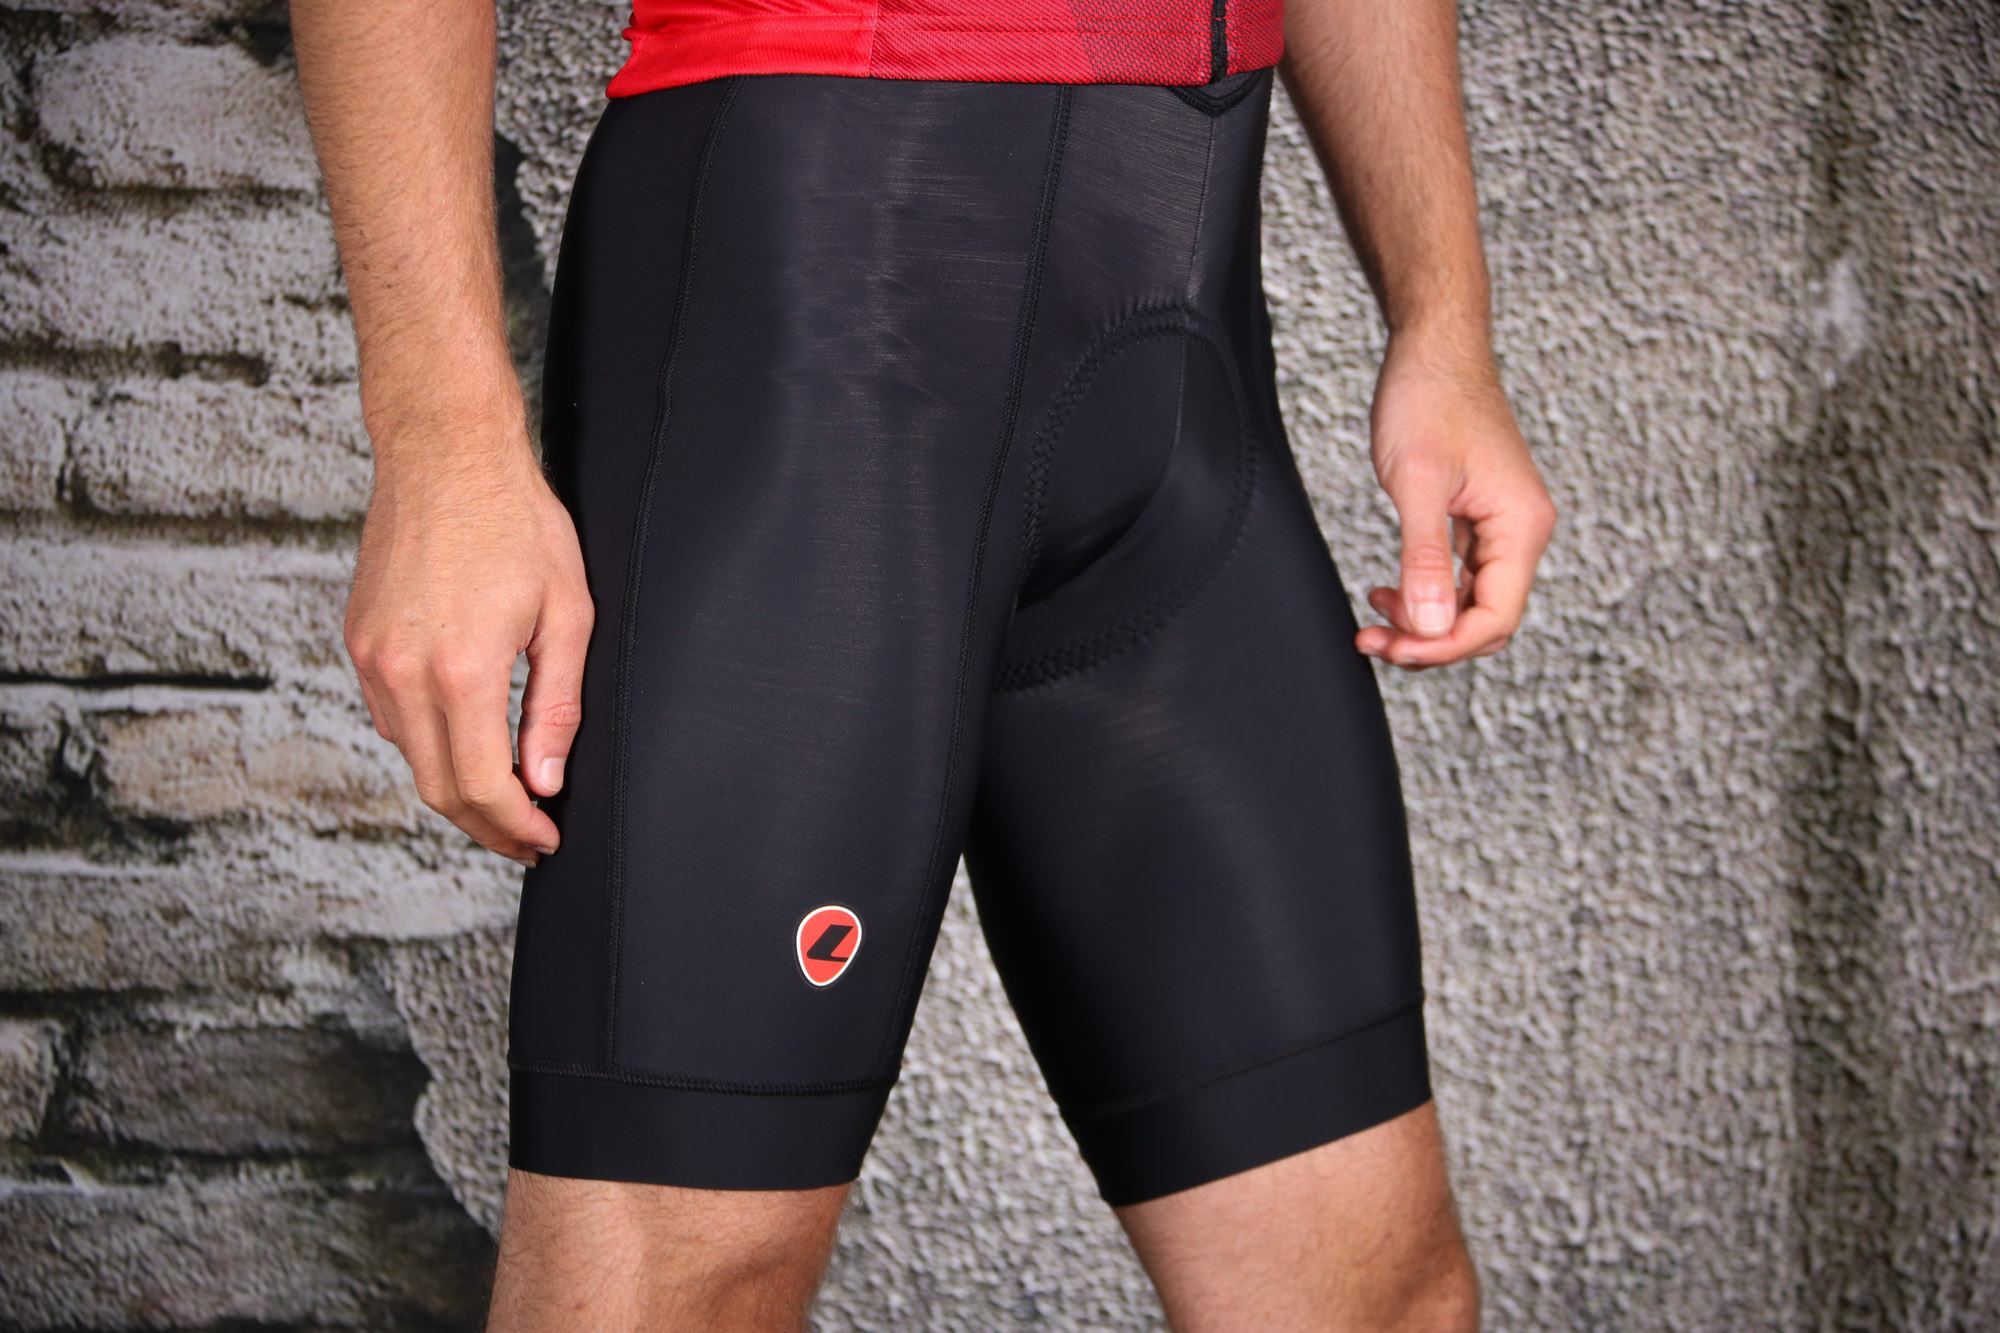 Lusso Pro 25 Coolmax 8 Panel Road MTB Mountain Bike Cycling Shorts in Black